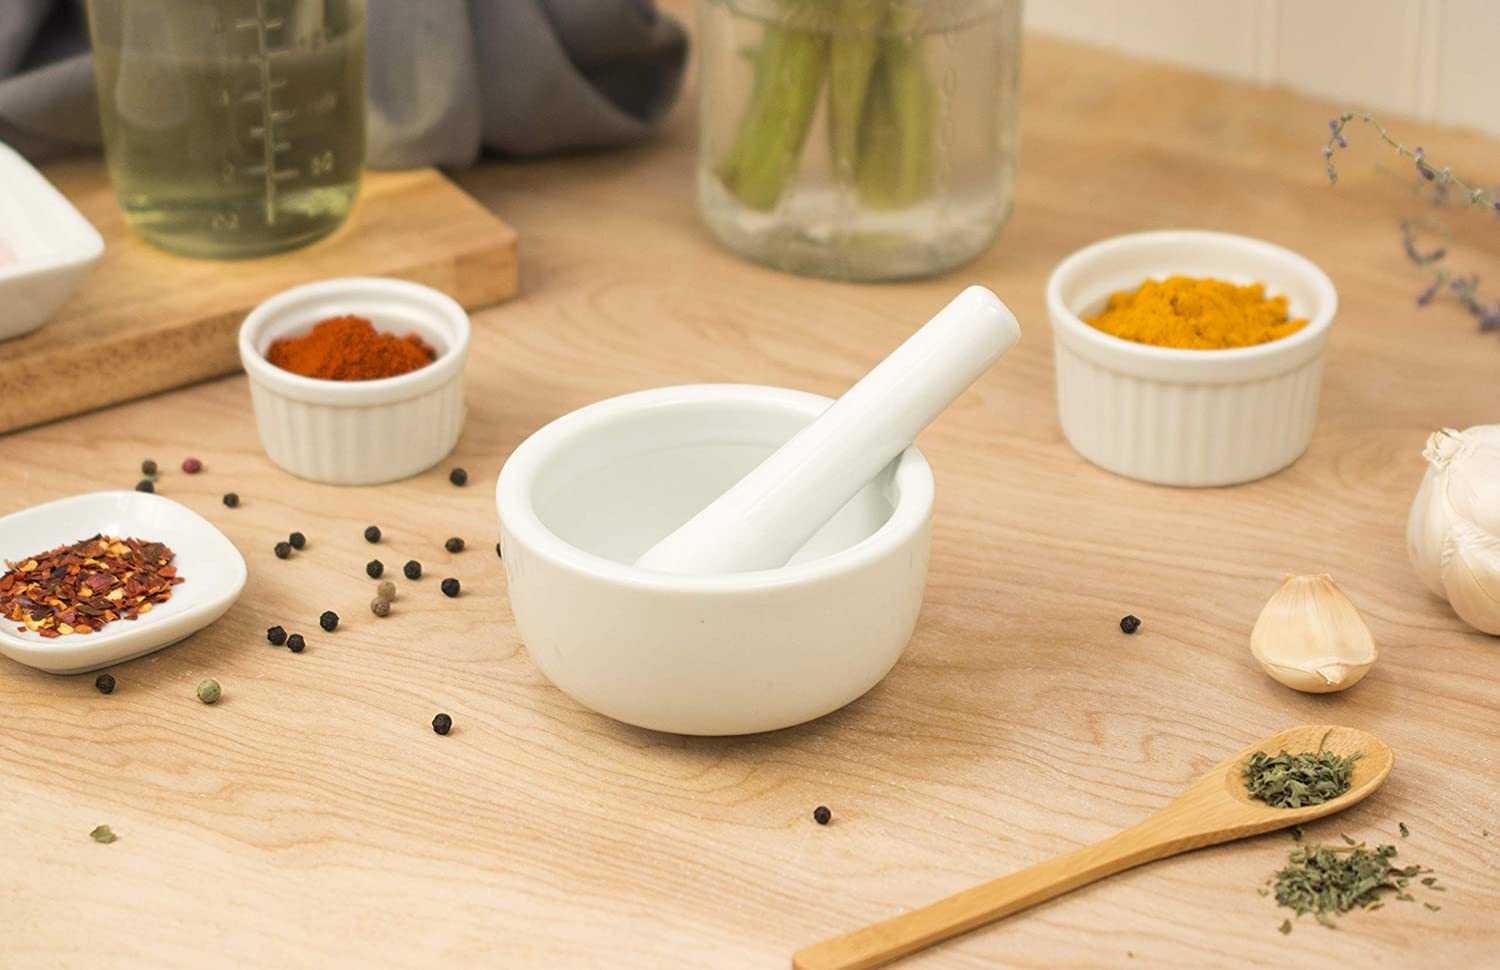 HIC Harold Import Co. Mortar and Pestle Spice Herb Grinder Pill Crusher, Fine-Quality Porcelain, White, 3.5-Inches: Mortar And Pestle: Kitchen & Dining